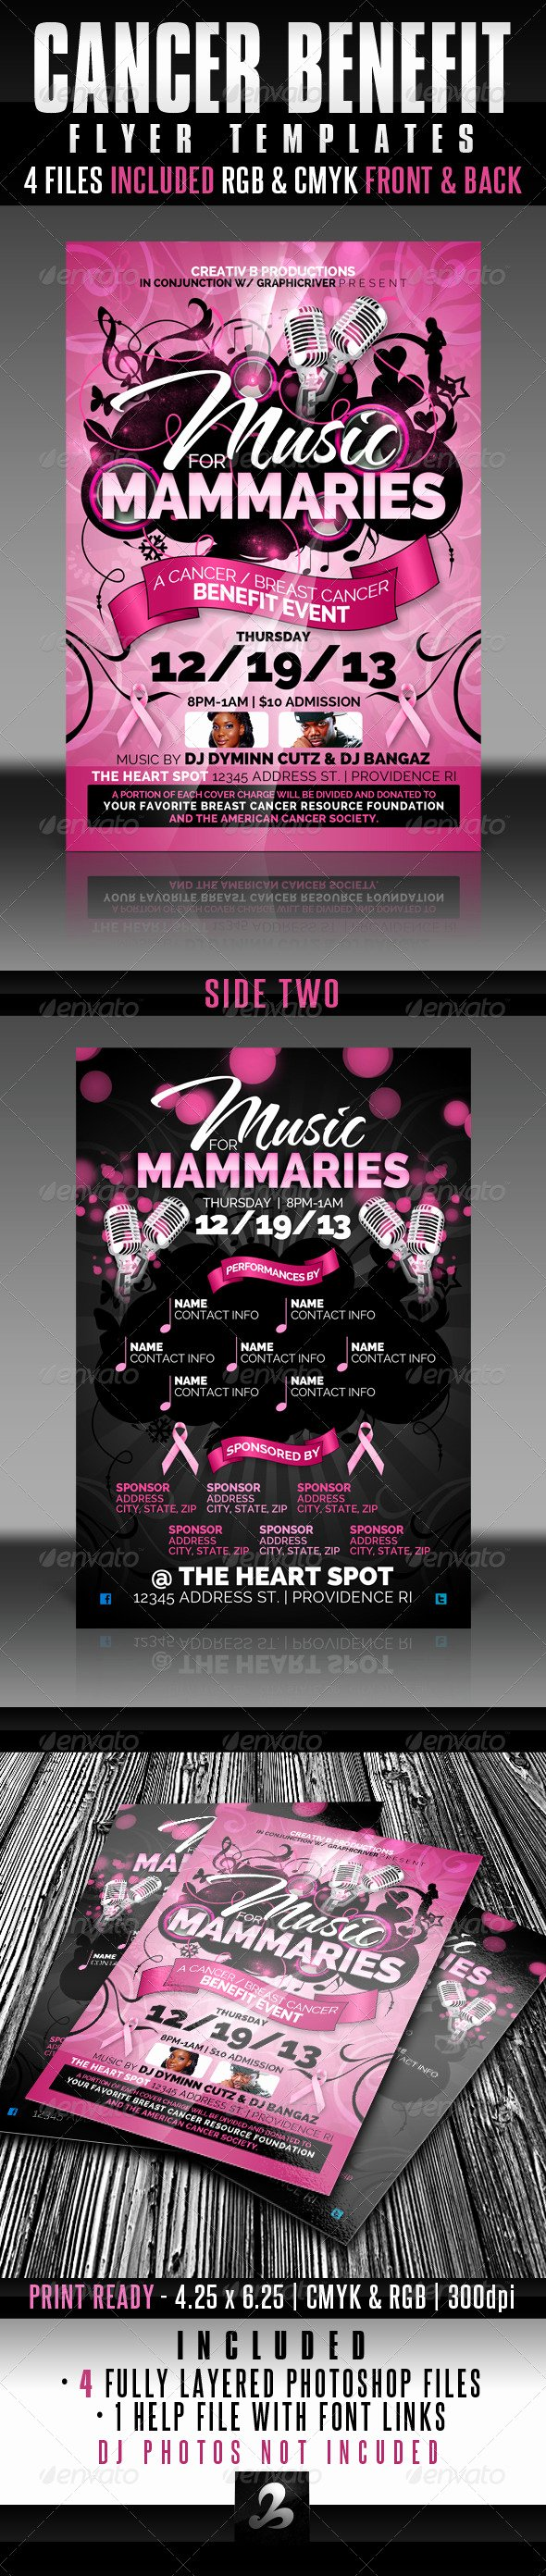 Benefit Flyer Template New Cancer Benefit Flyer Templates by Creativb